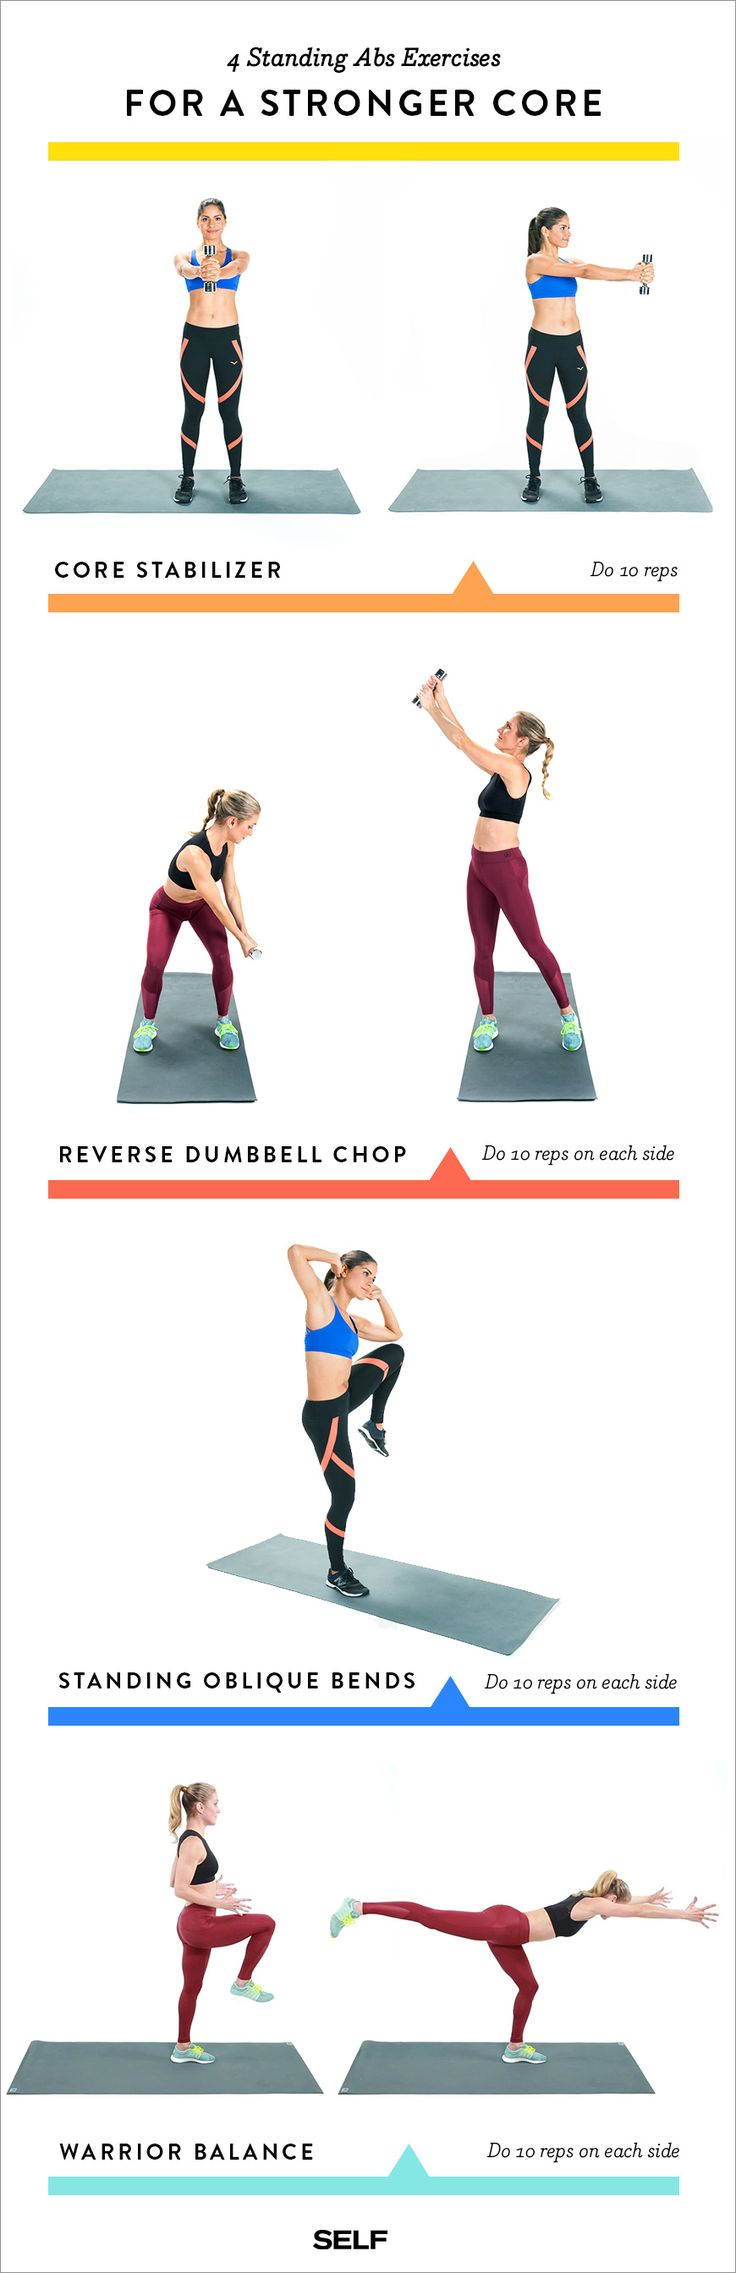 4 Standing Abs Exercises